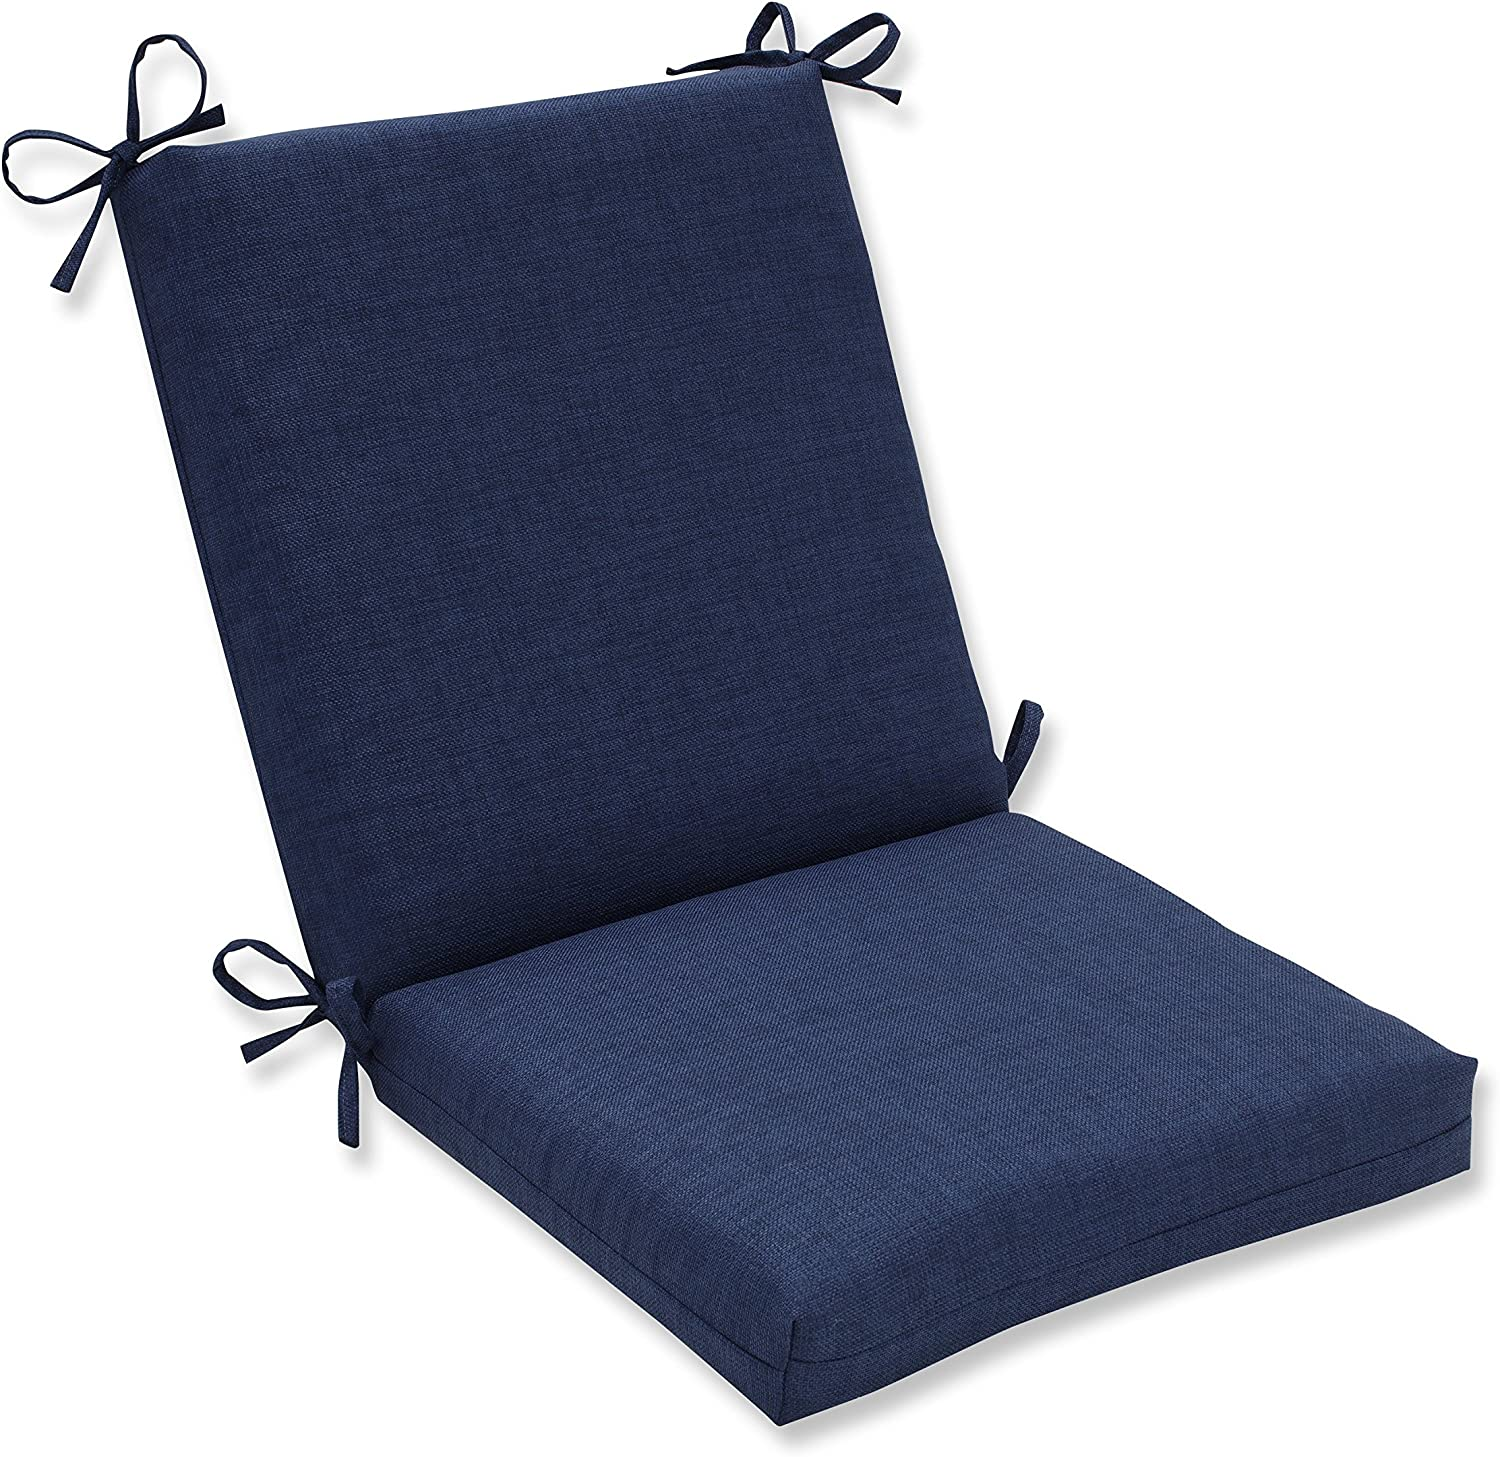 Pillow Perfect Outdoor/Indoor Rave Indigo Squared Corners Chair Cushion